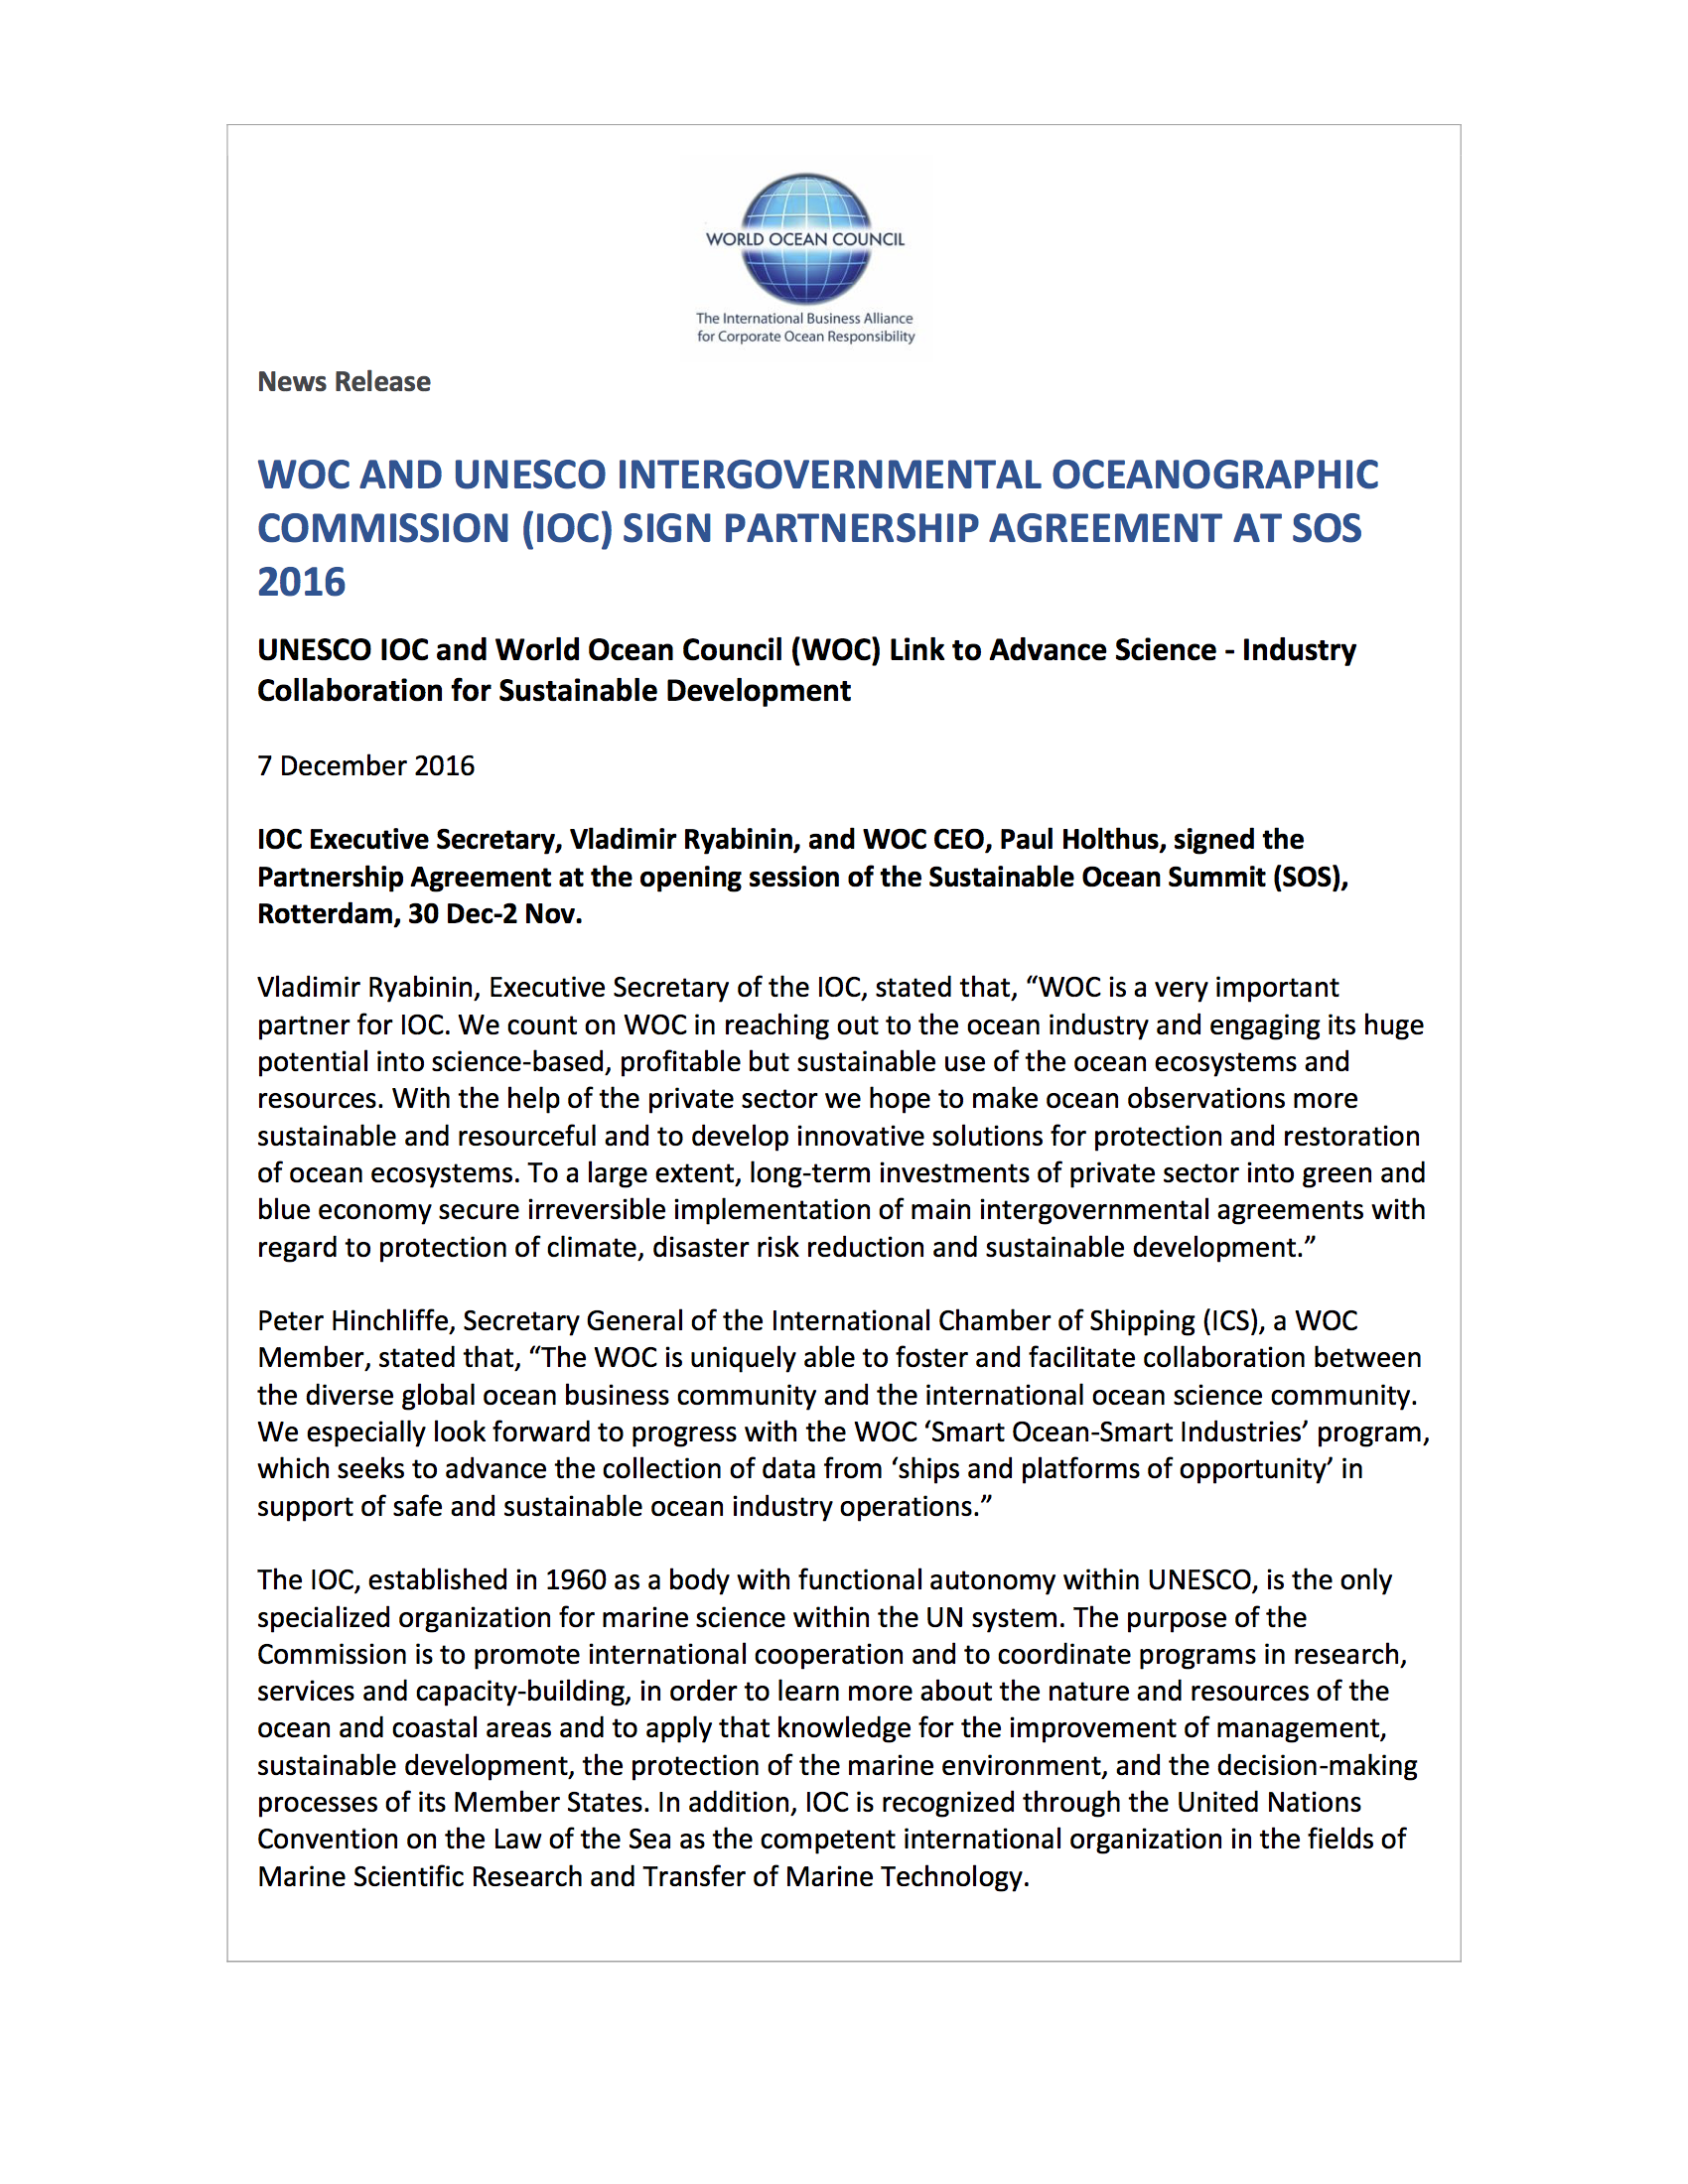 WOC and UNESCO Intergovernmental Oceanographic Commission Partnership Agreement